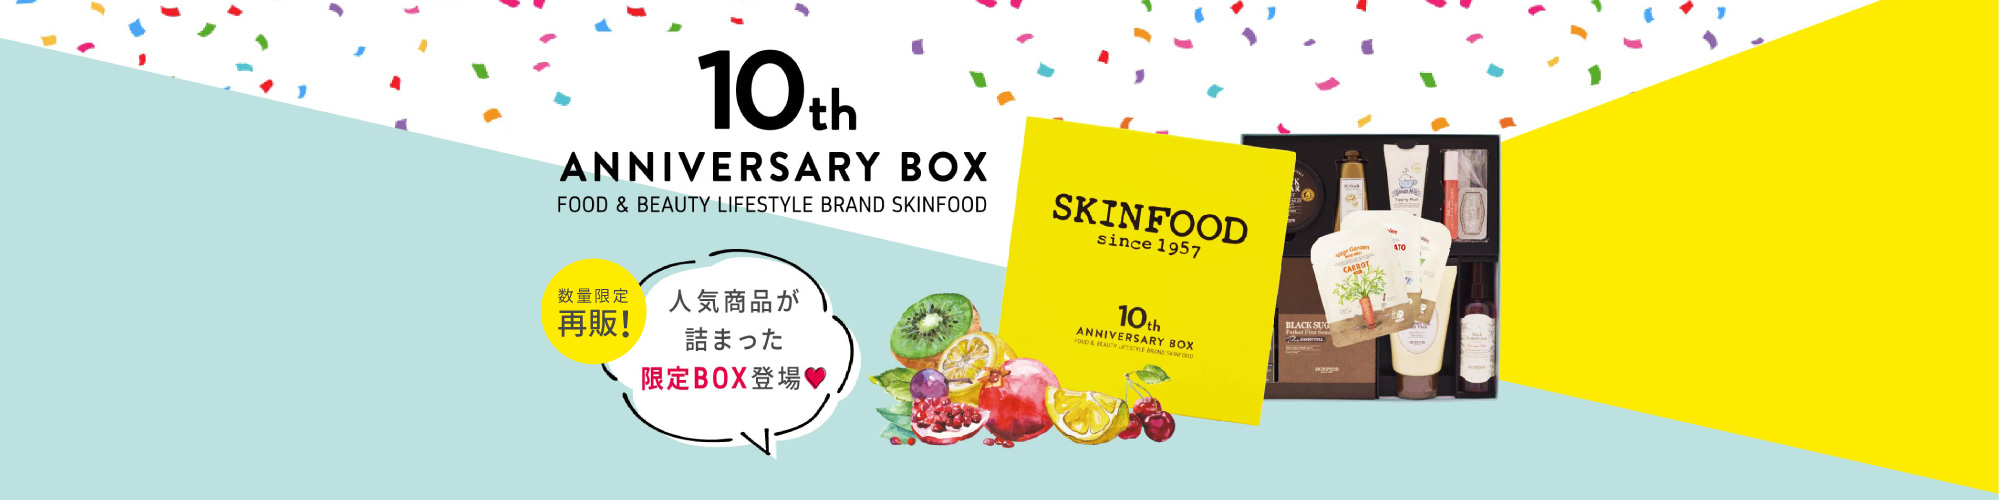 10th Anniversary Box